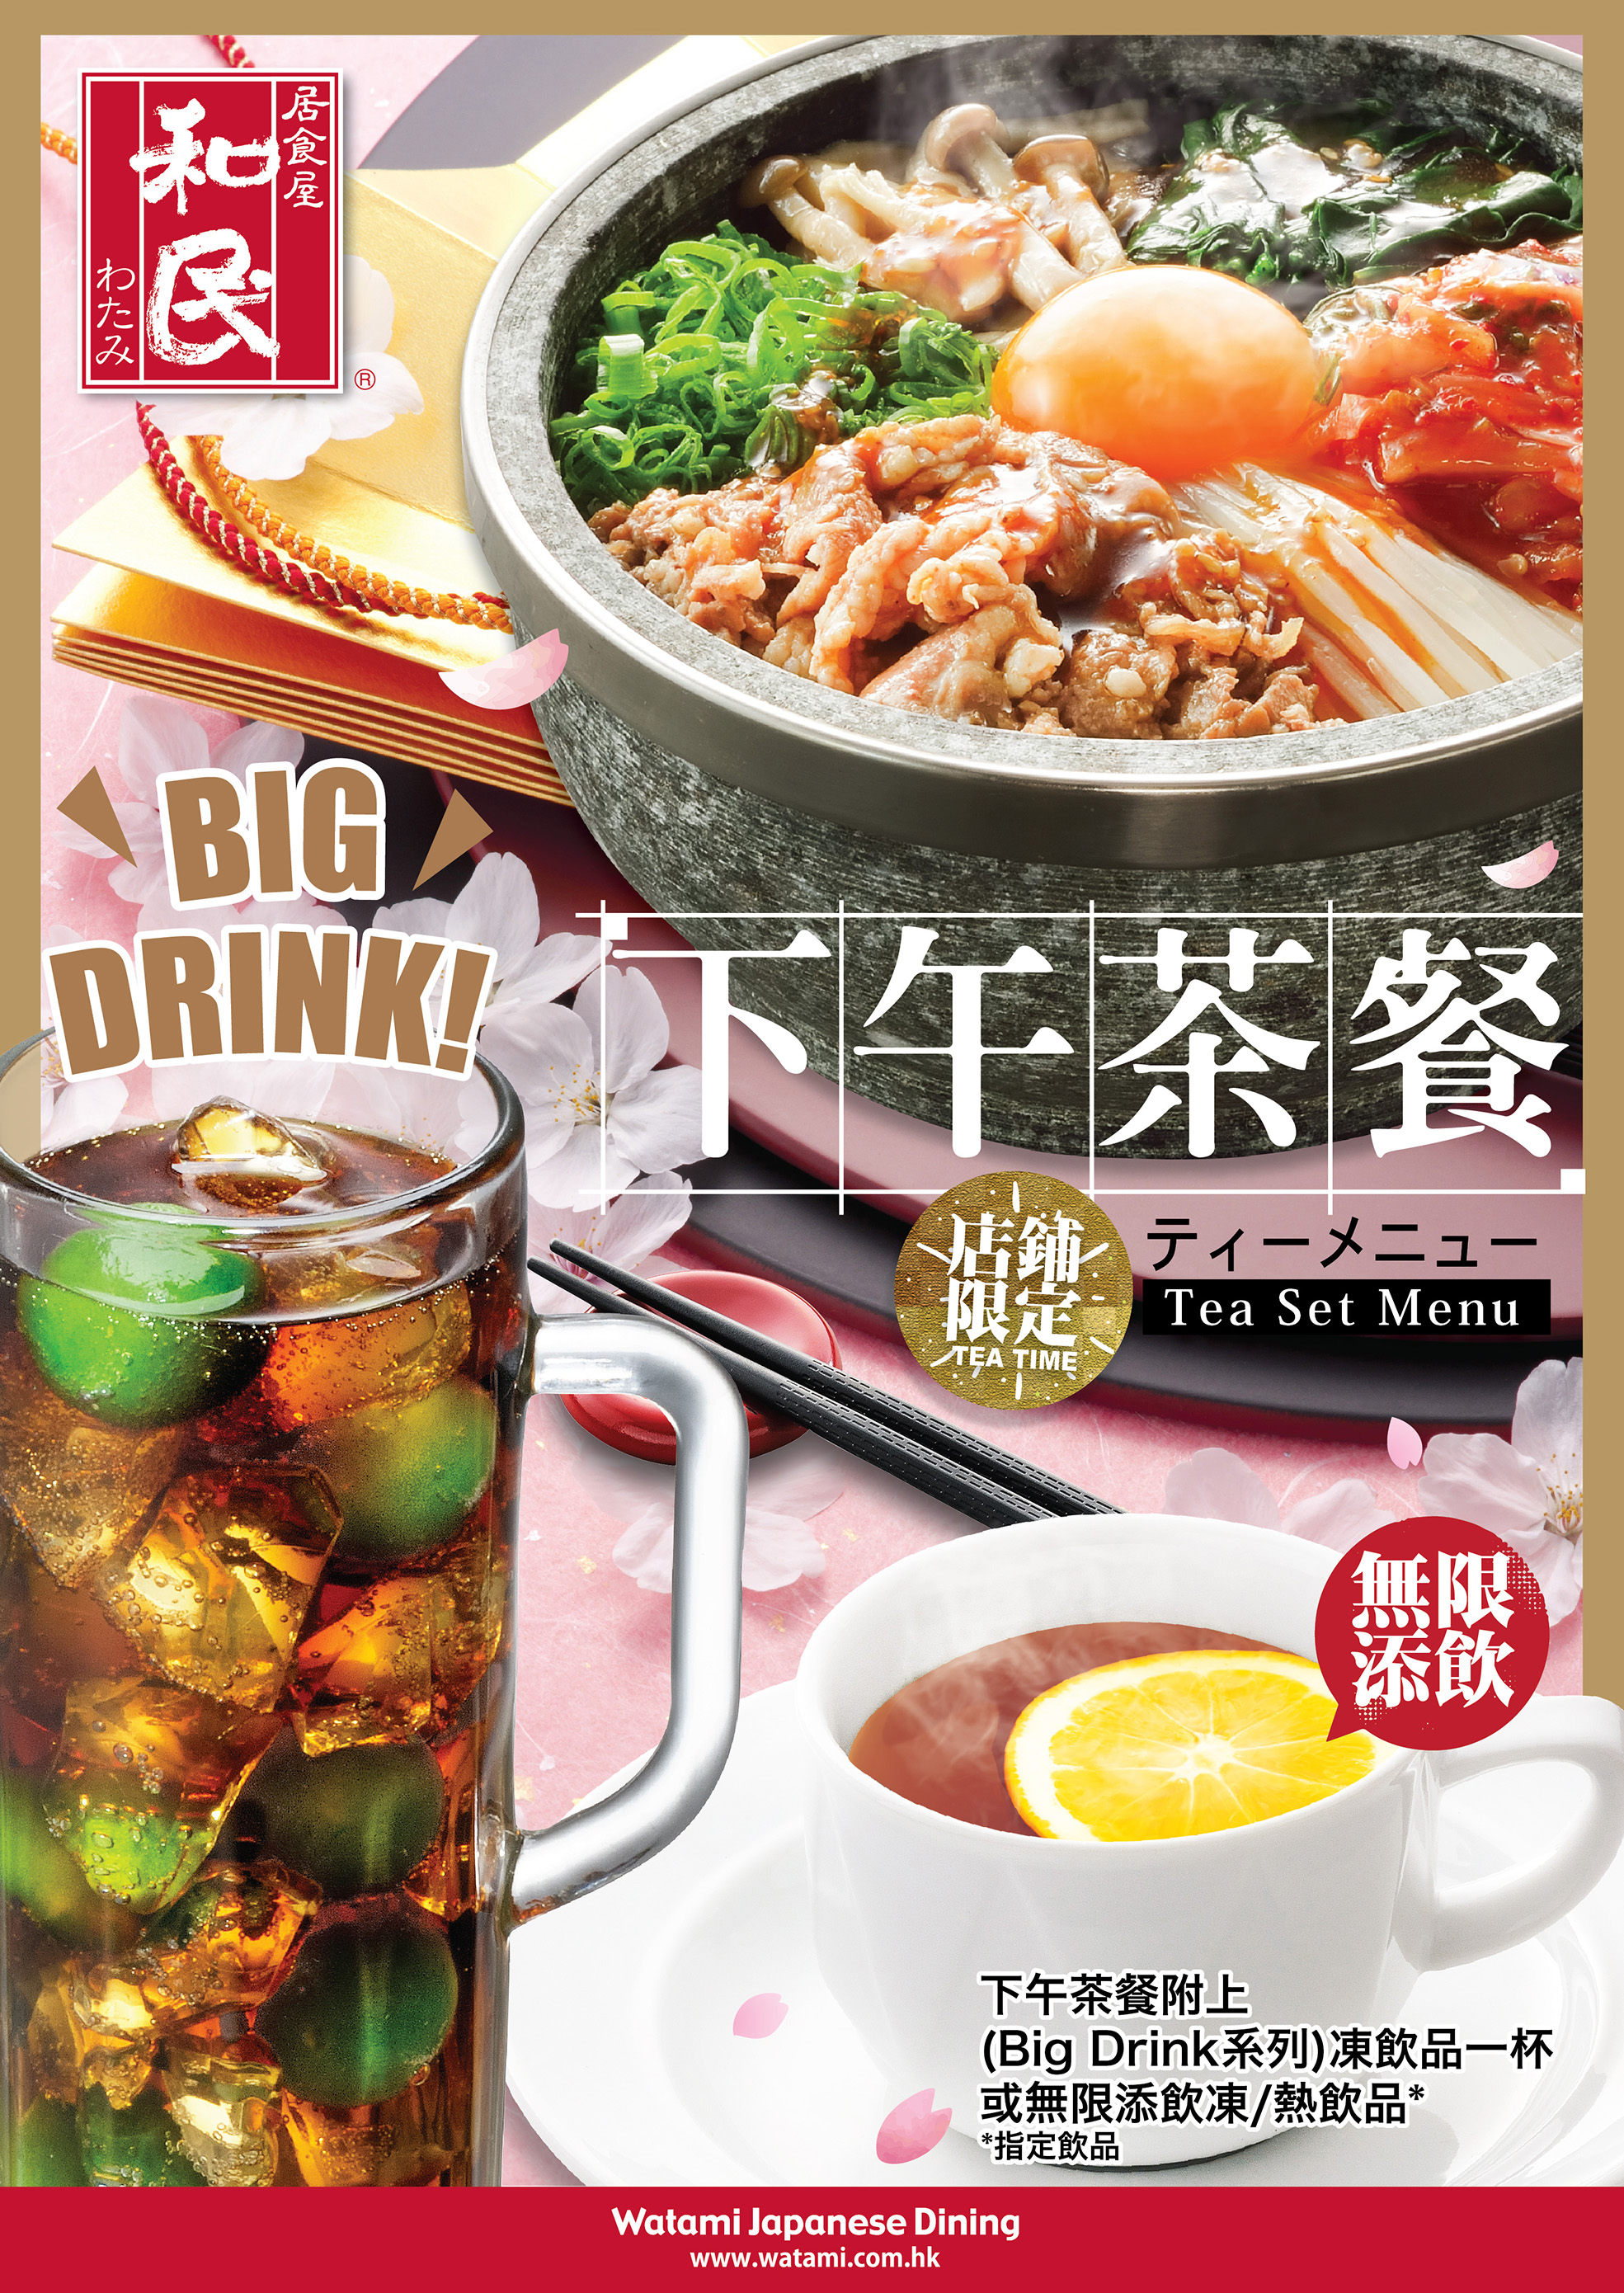 PM_Watami Tea Menu_#38B7E7E.jpg